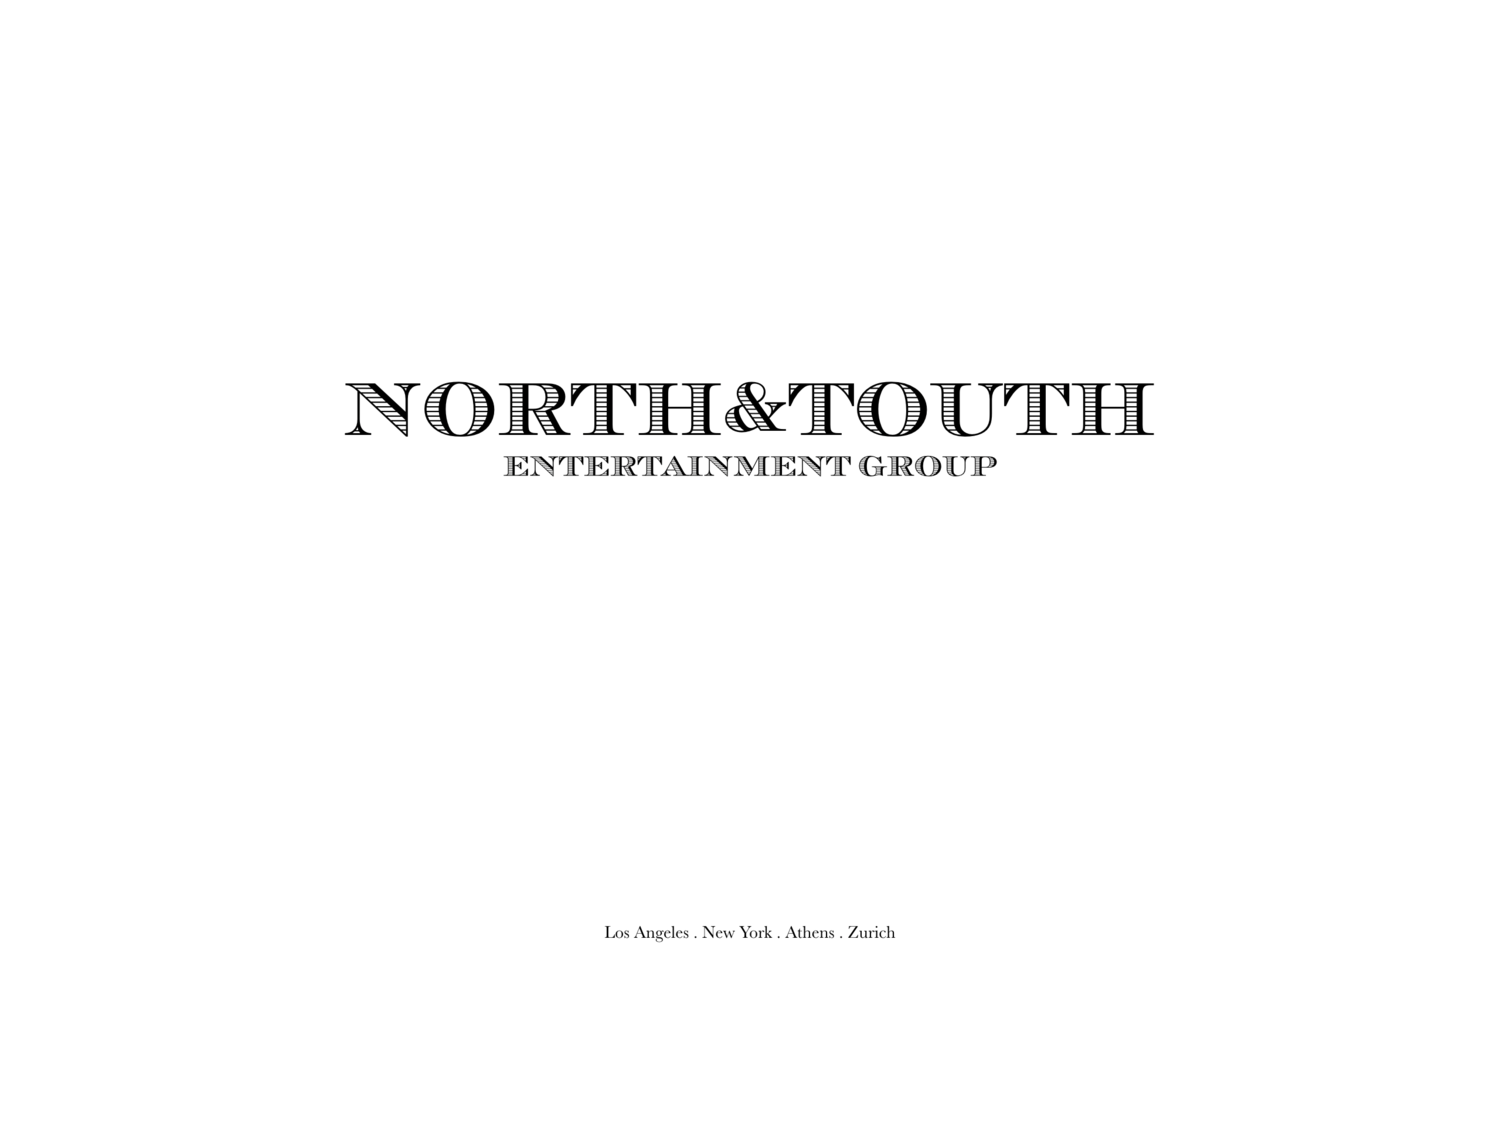 NORTH&TOUTH Entertainment Group